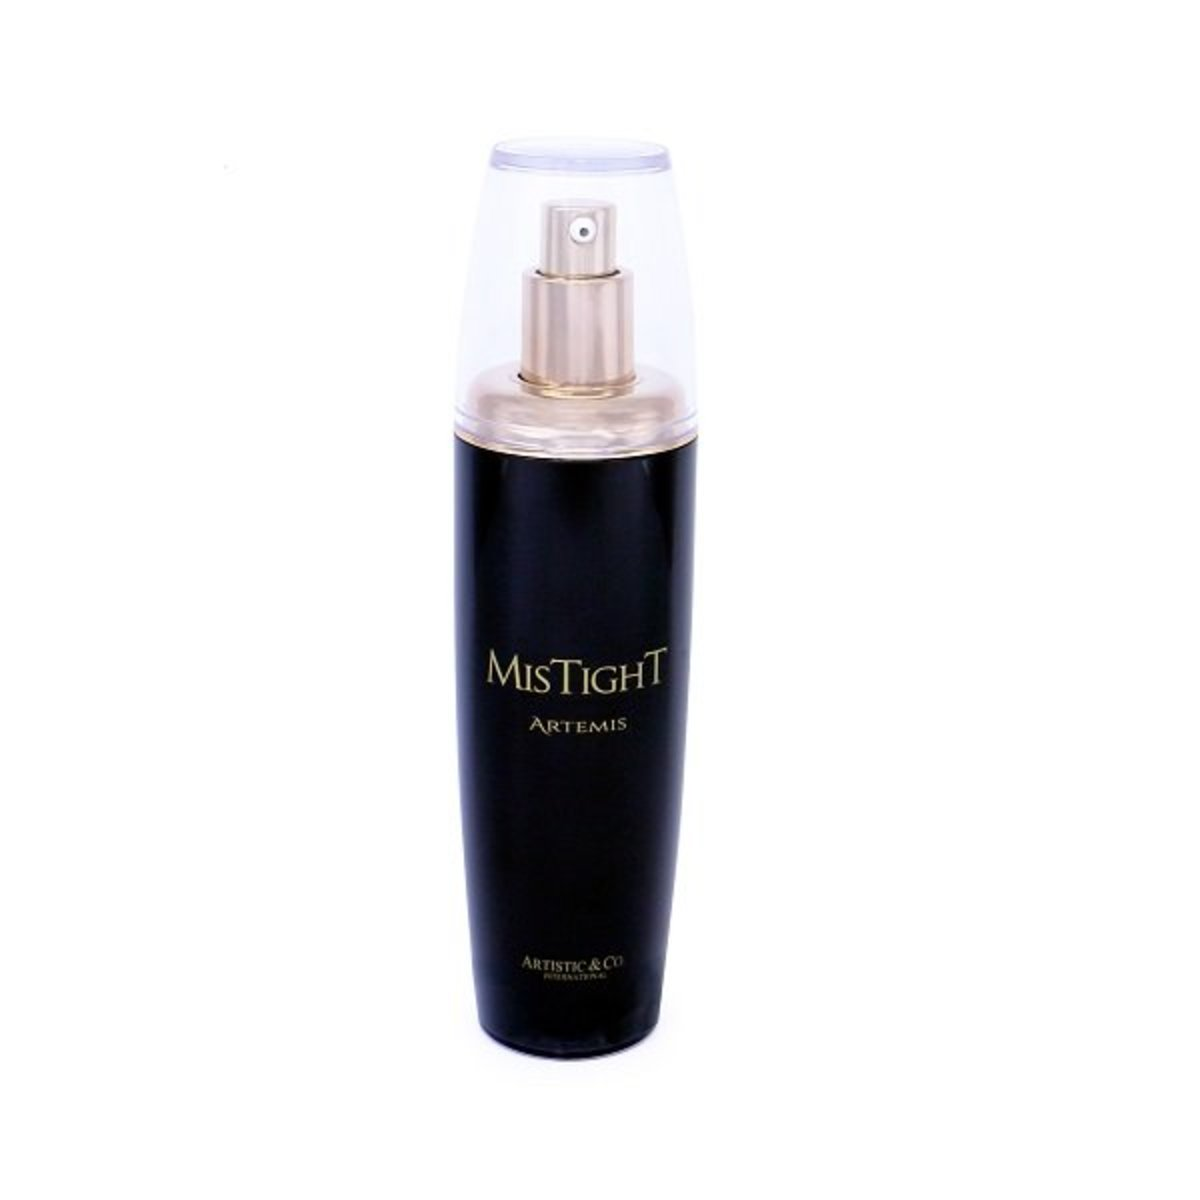 MISTIGHT ARTEMIS ESSENCE FOR GLOSSY SKIN (117ML)